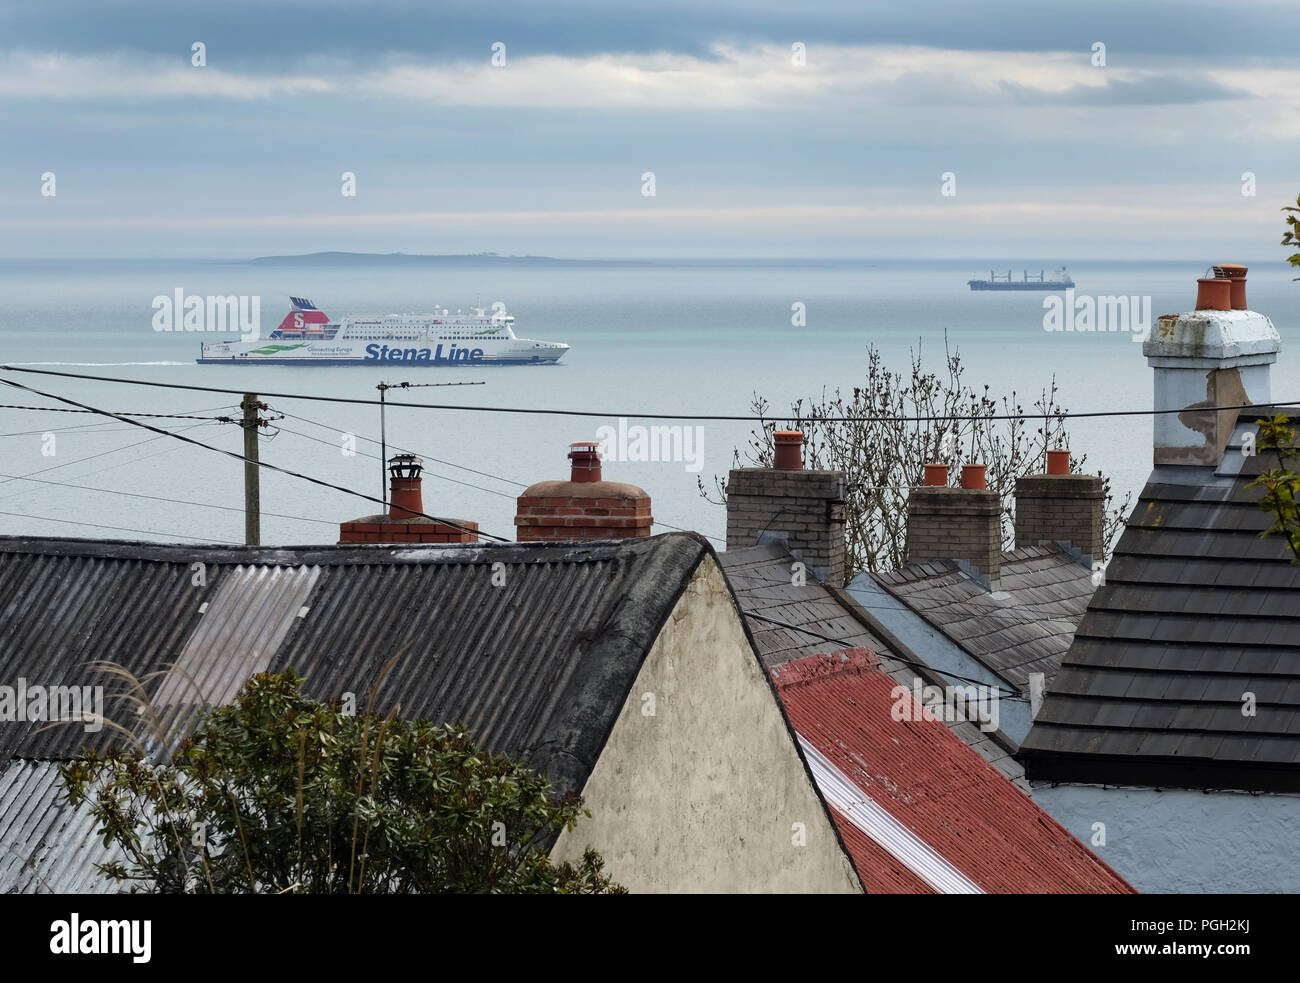 Shipping on Belfast Lough & the rooftops of Blackhead village, County Antrim, Northern Ireland. - Stock Image